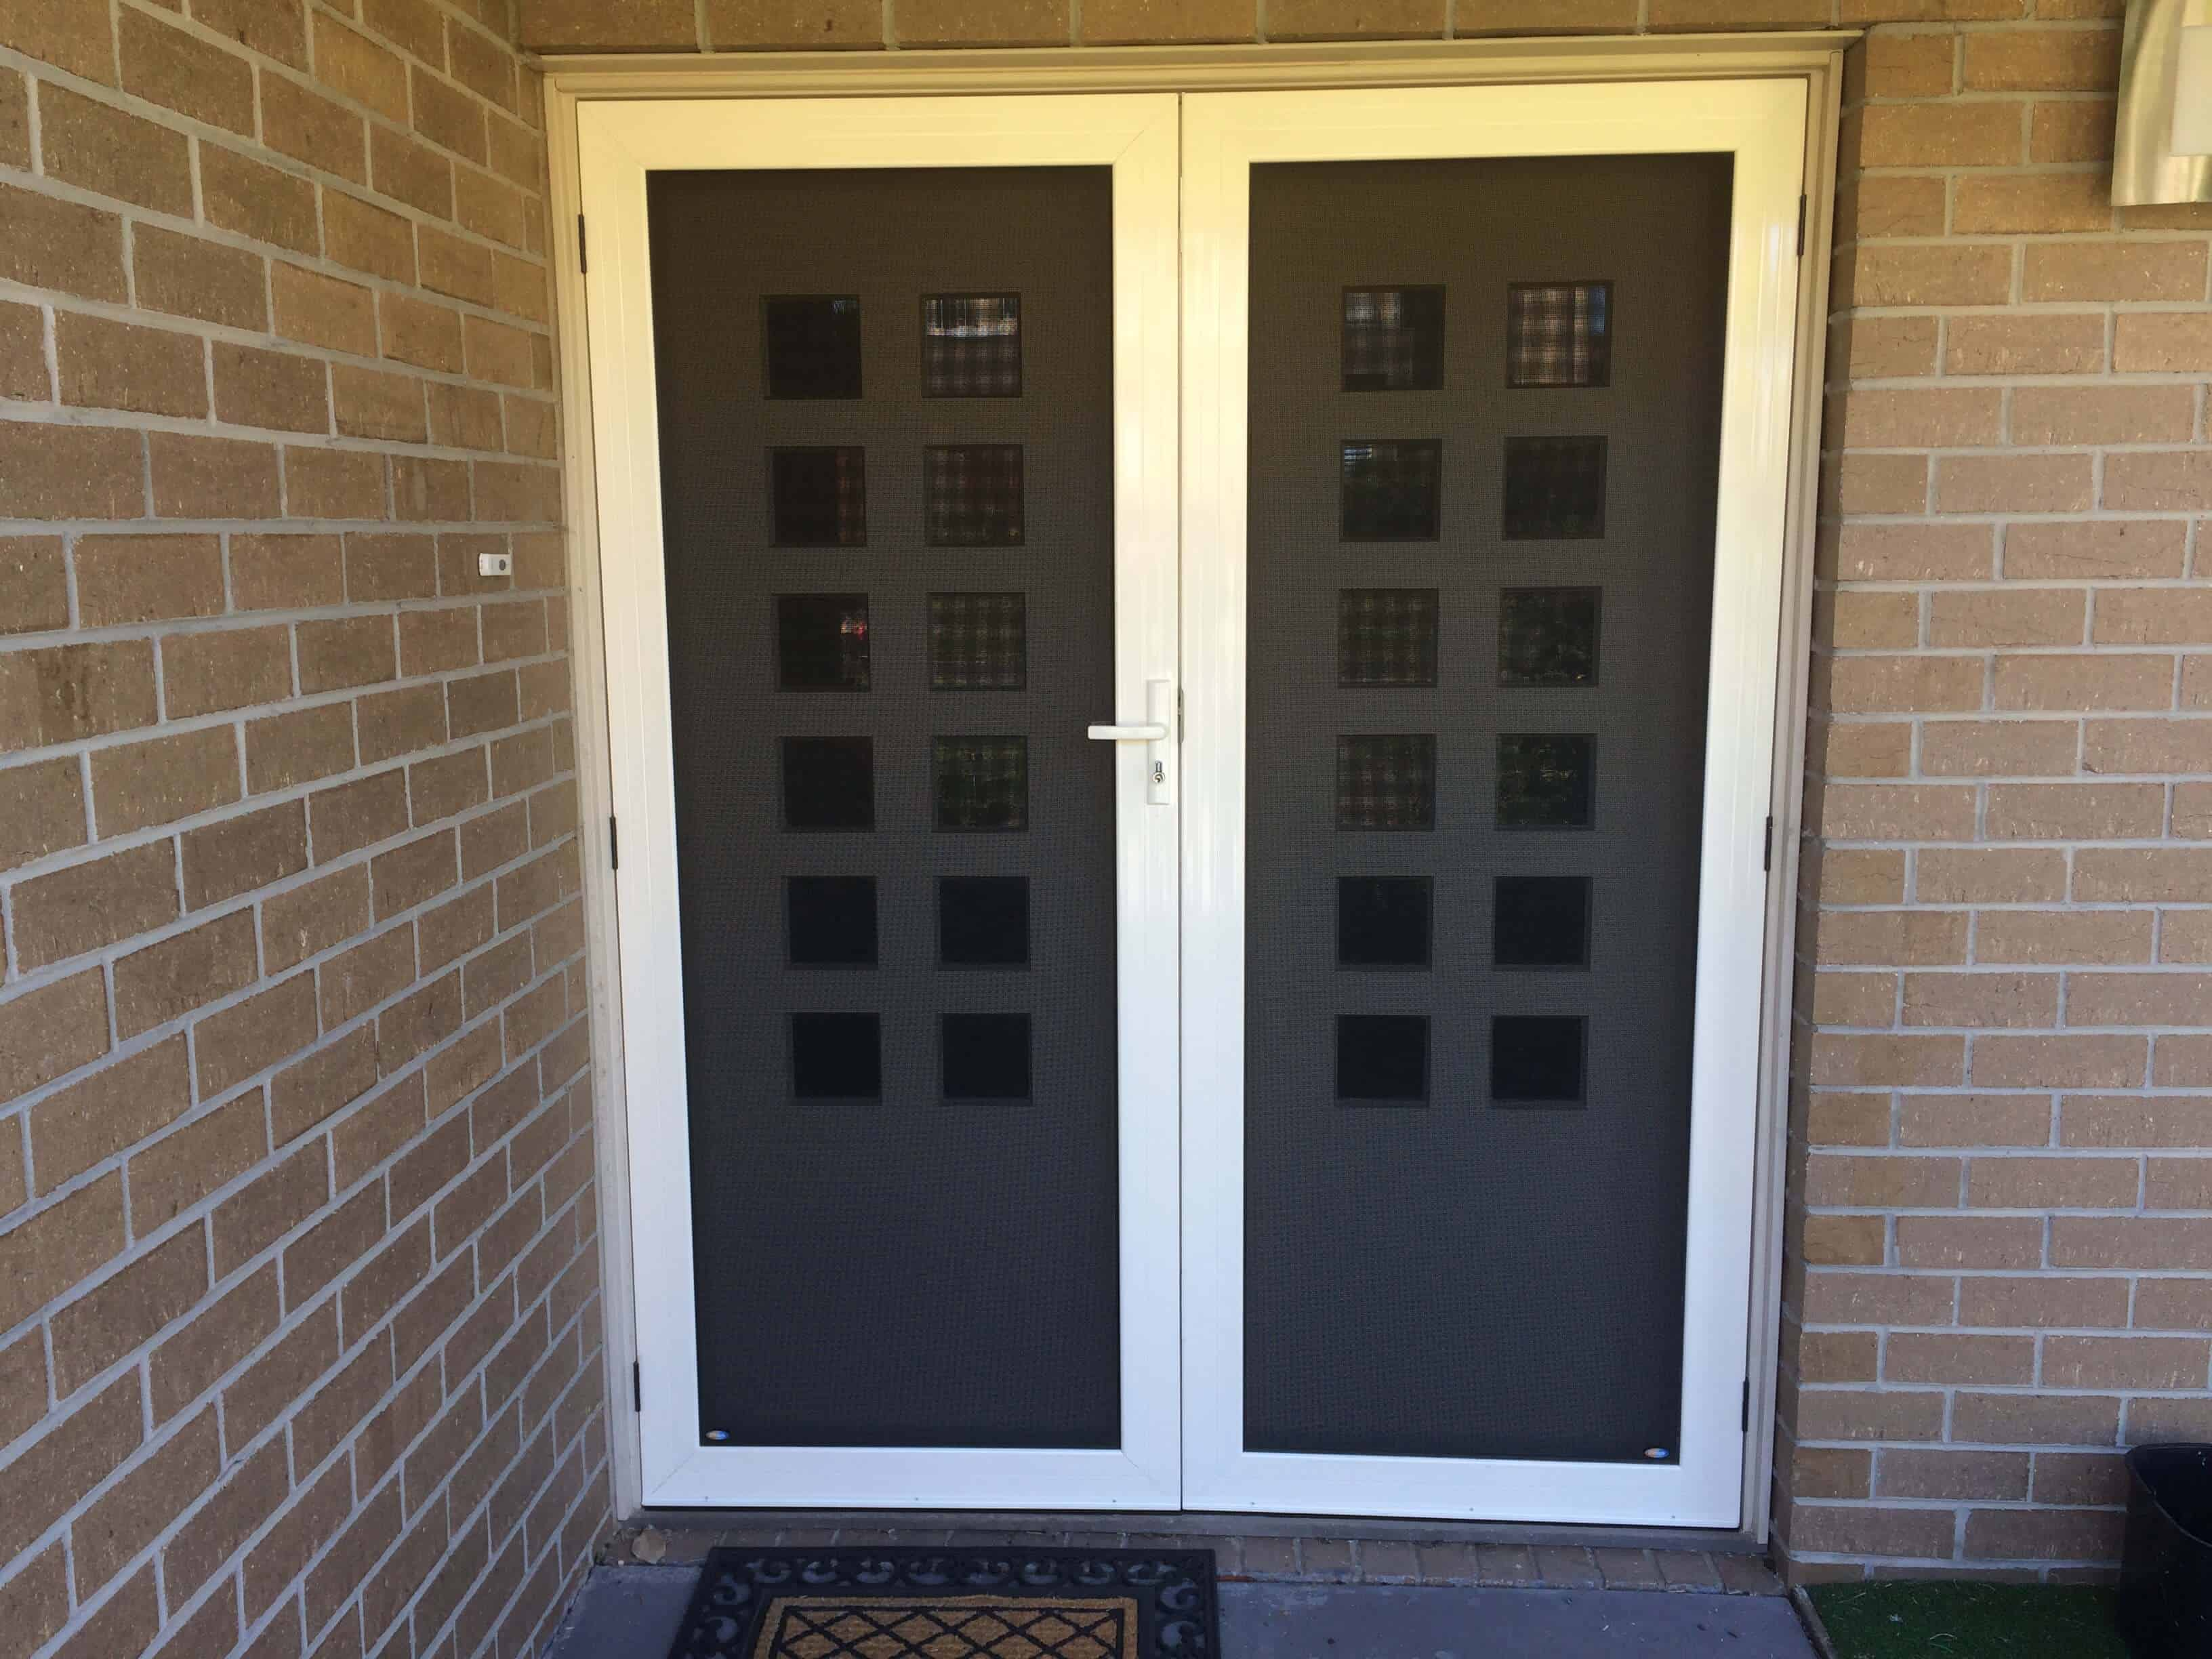 Crimsafe Ultimate Double Security Door | Crimsafe Melbourne - The Superior Door Company & Crimsafe Ultimate Double Security Door | Crimsafe Melbourne - The ...